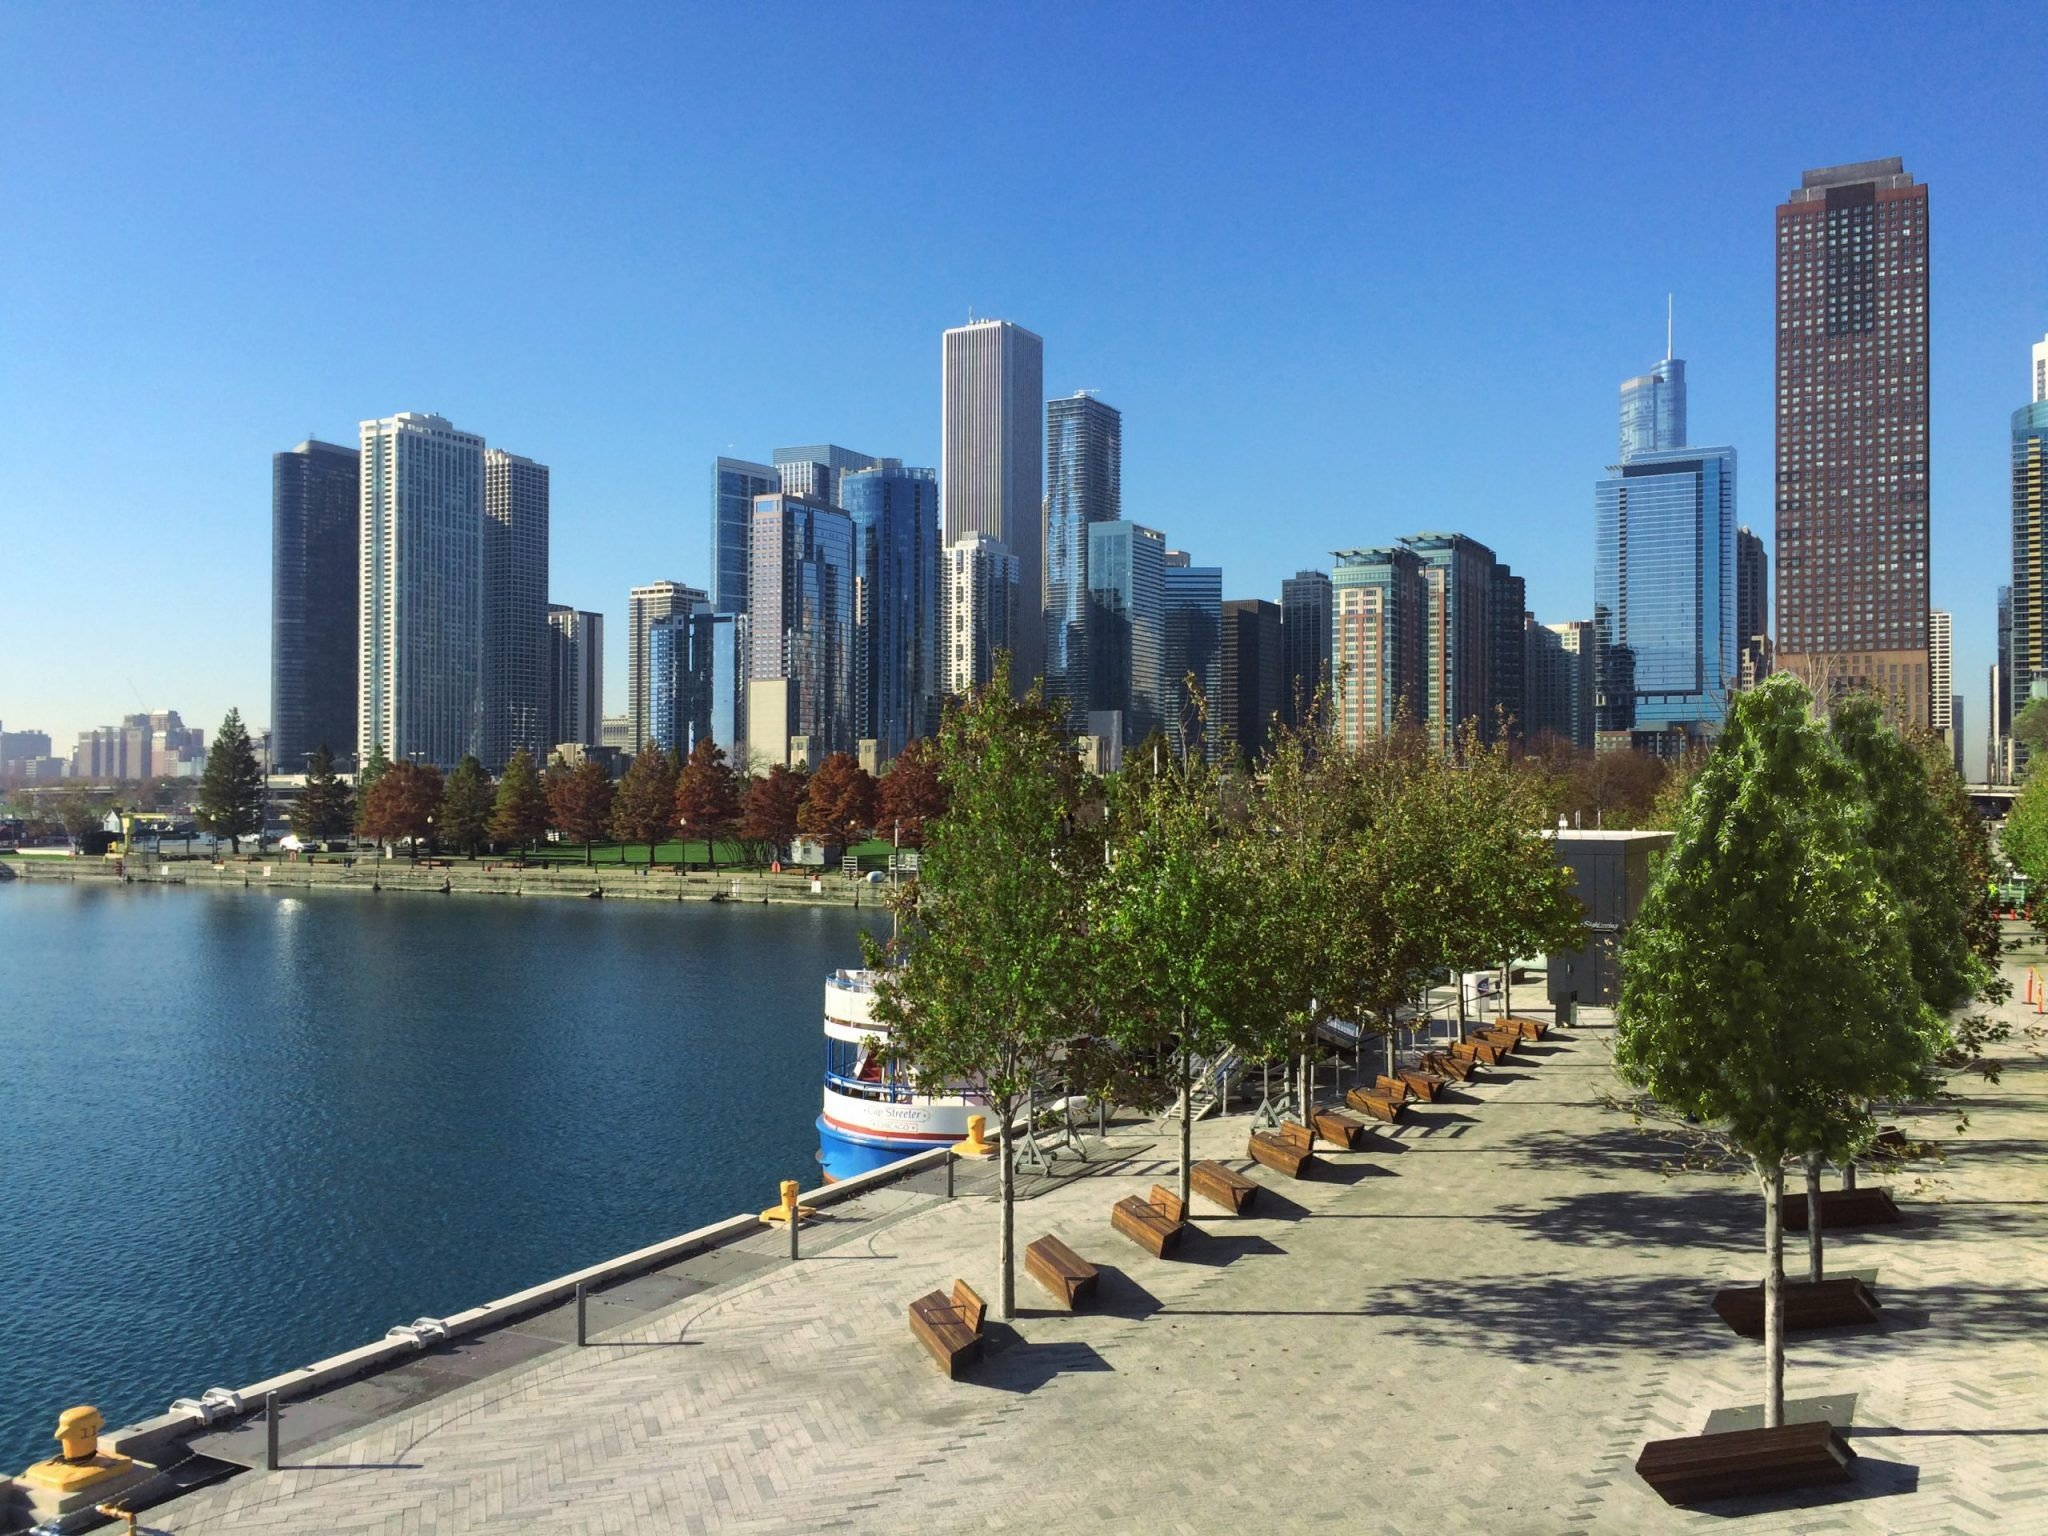 Navy Pier trees installed with Platipus anchors